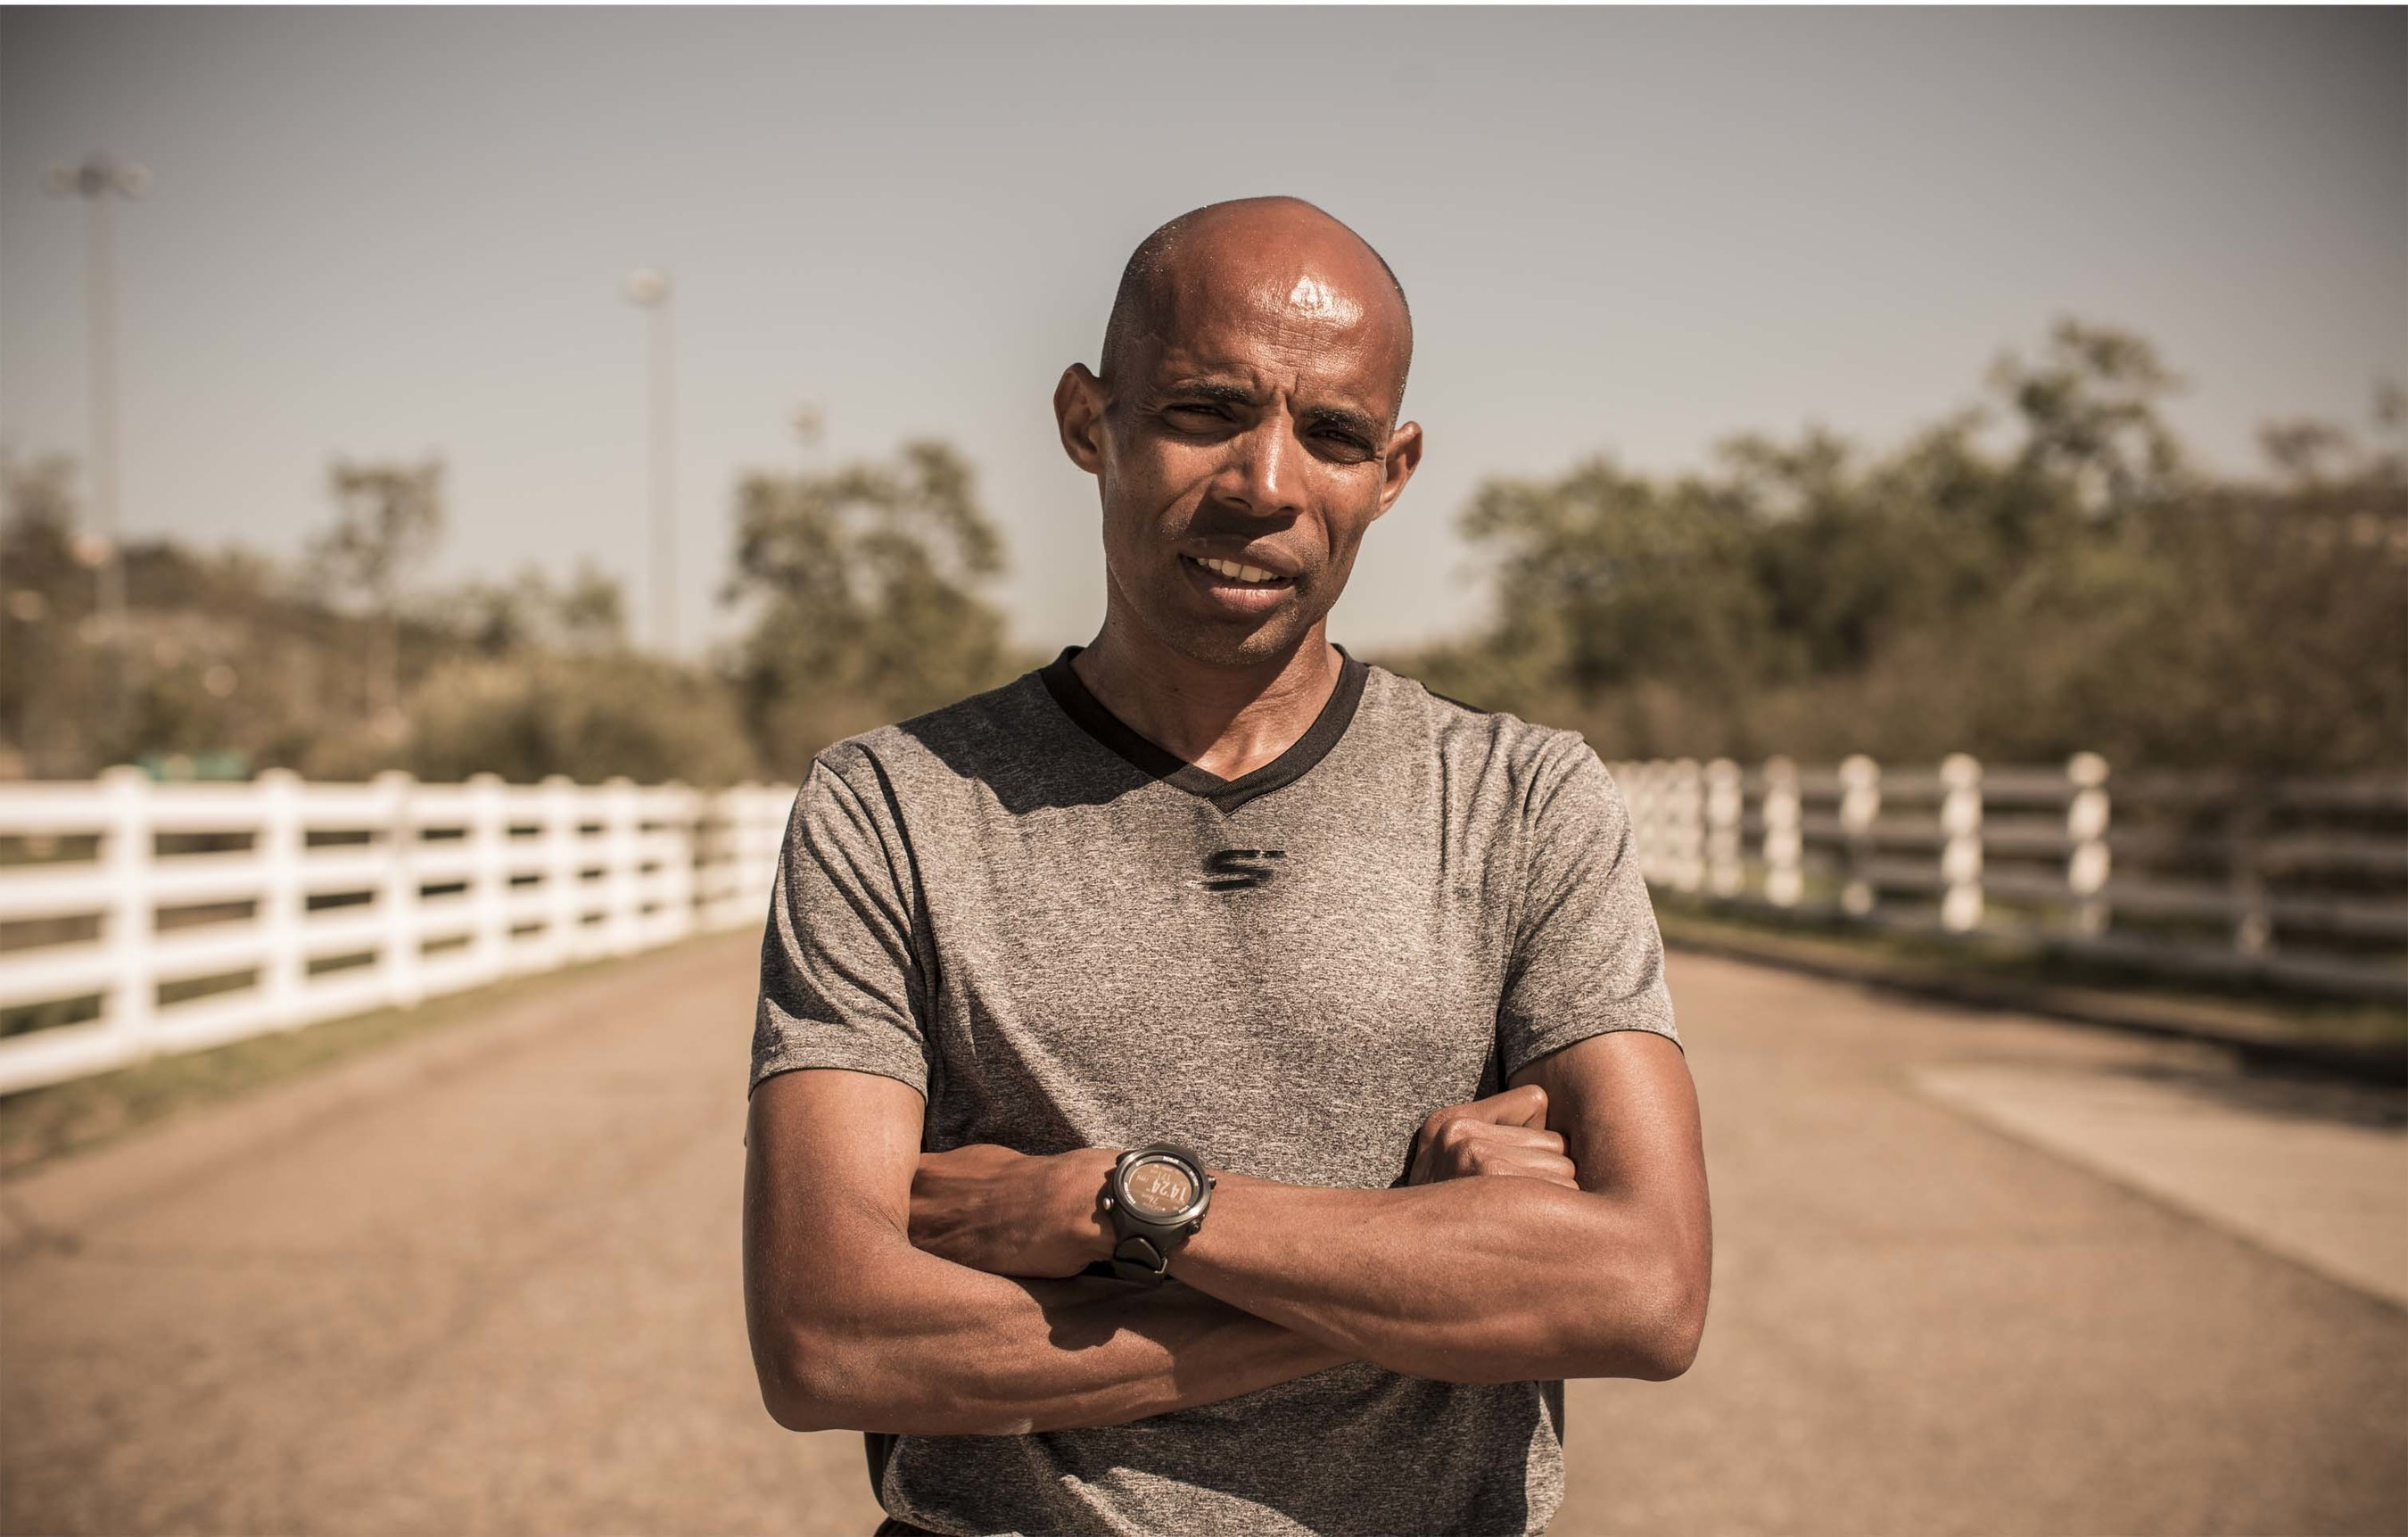 Meb Keflezighi, 2014 Winner of the Boston marathon